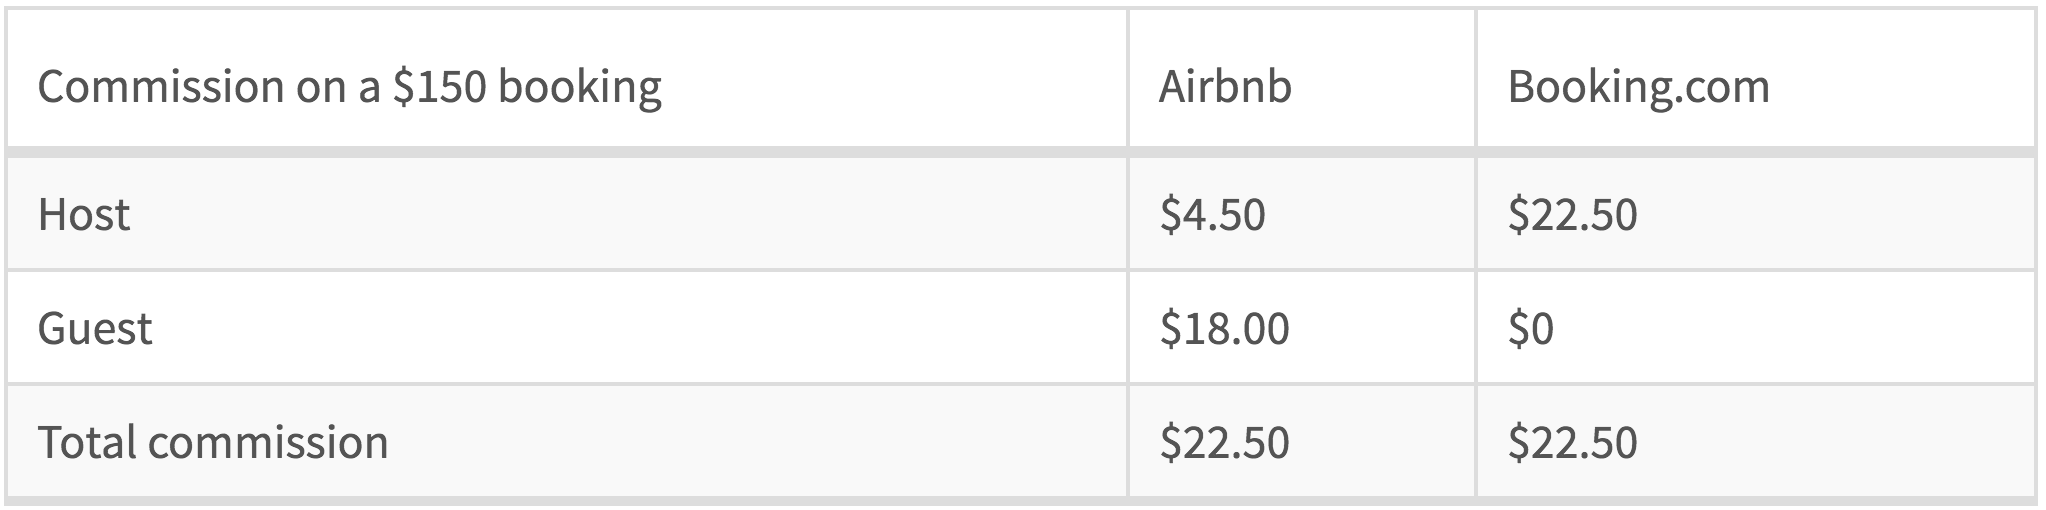 Airbnb-and-Booking.com-commission-structure-in---terms---150-booking-example-